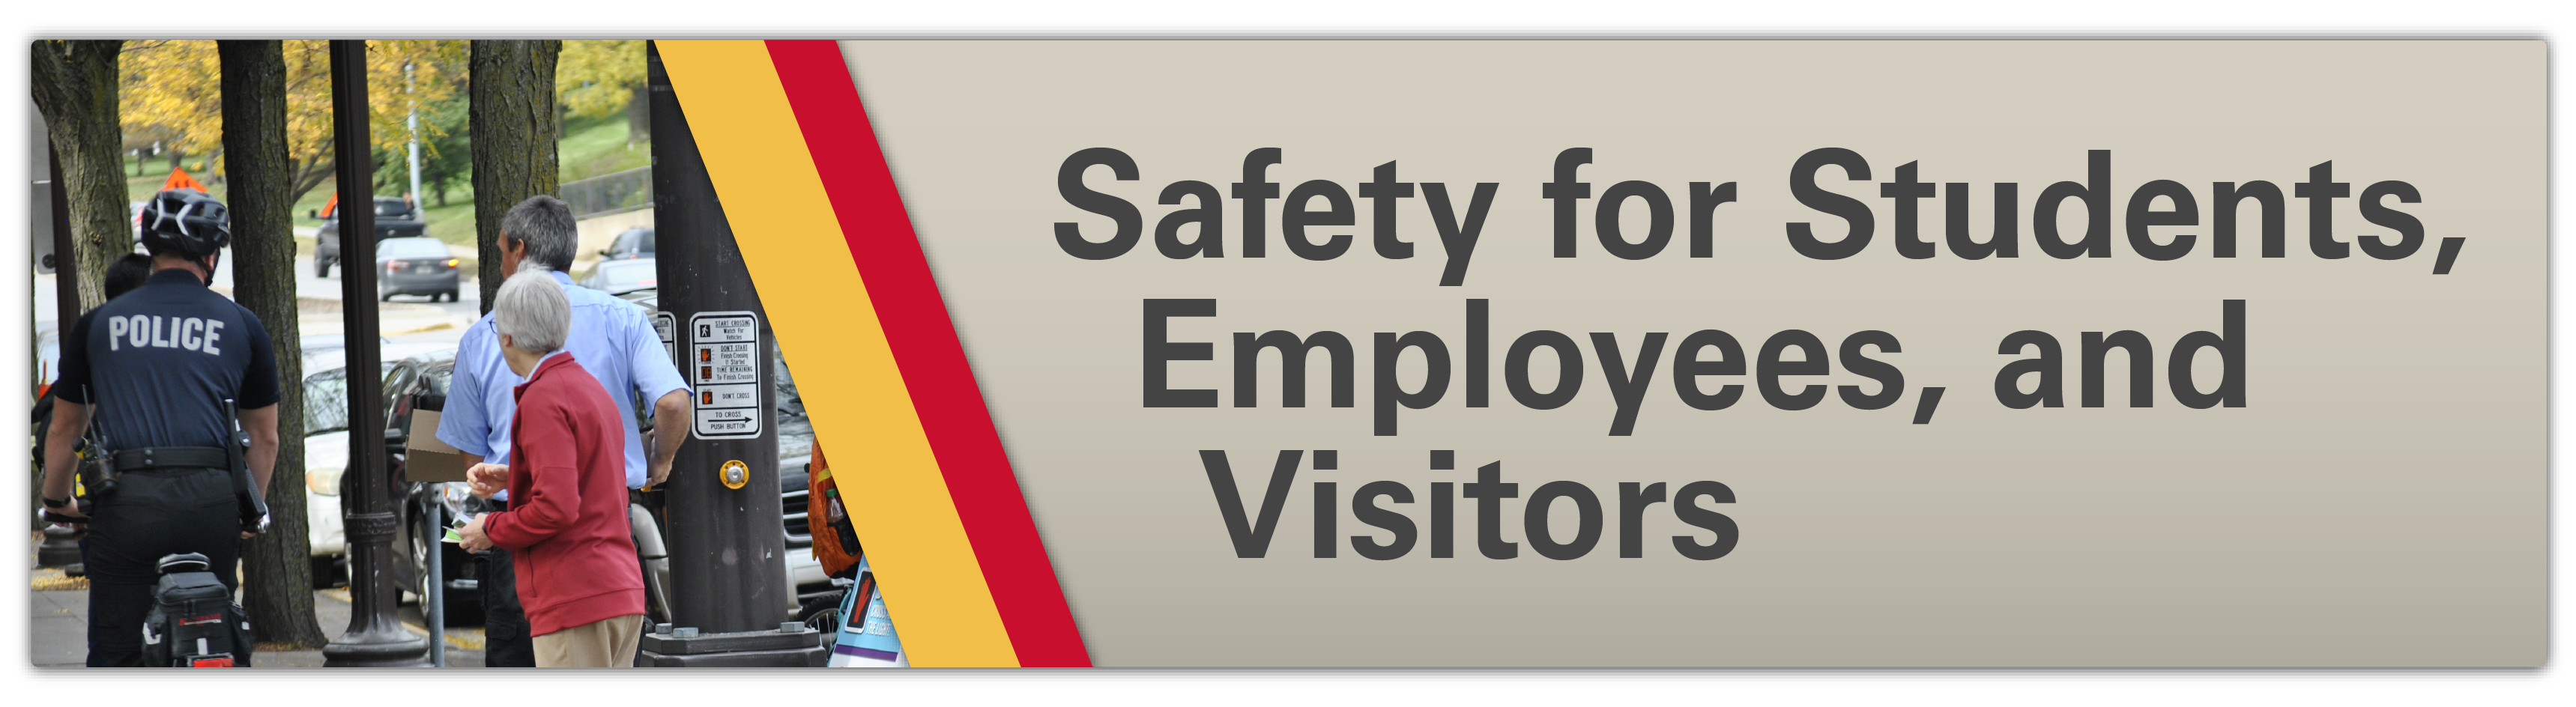 Safety for STudents, Employees, and Visitors